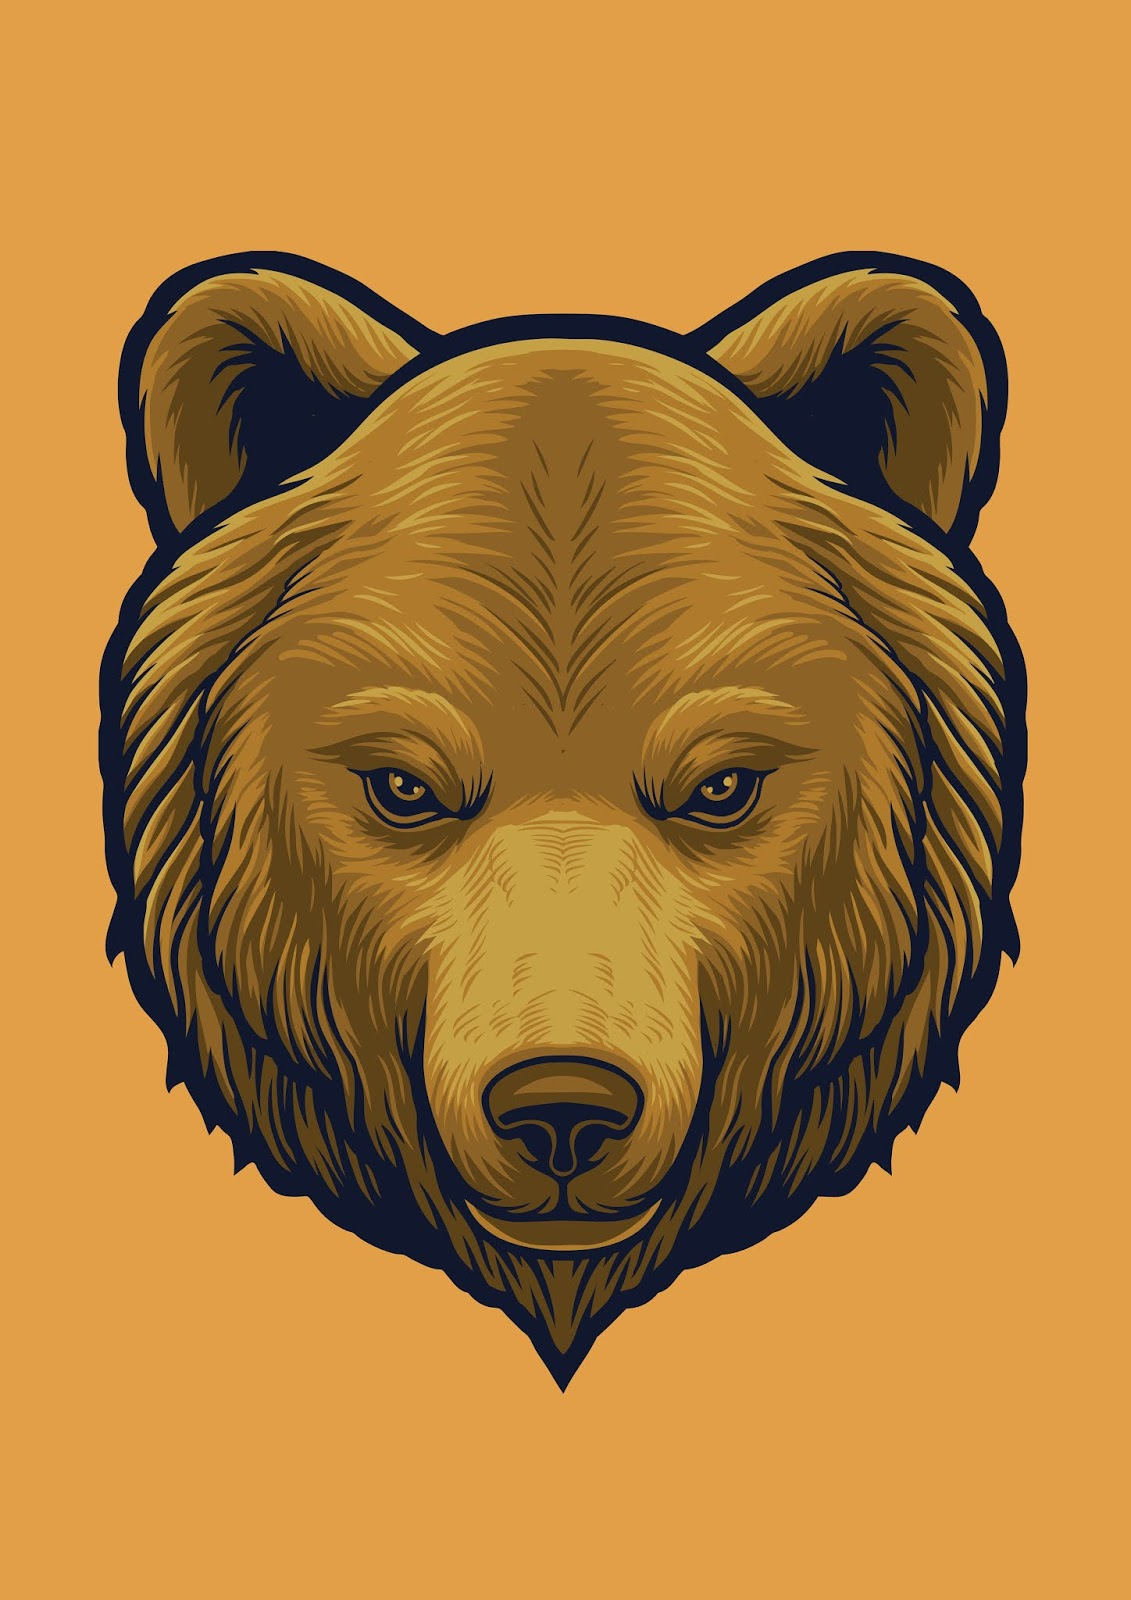 Grizzly Bear Head Design Illustration Free Download Vector CDR, AI, EPS and PNG Formats